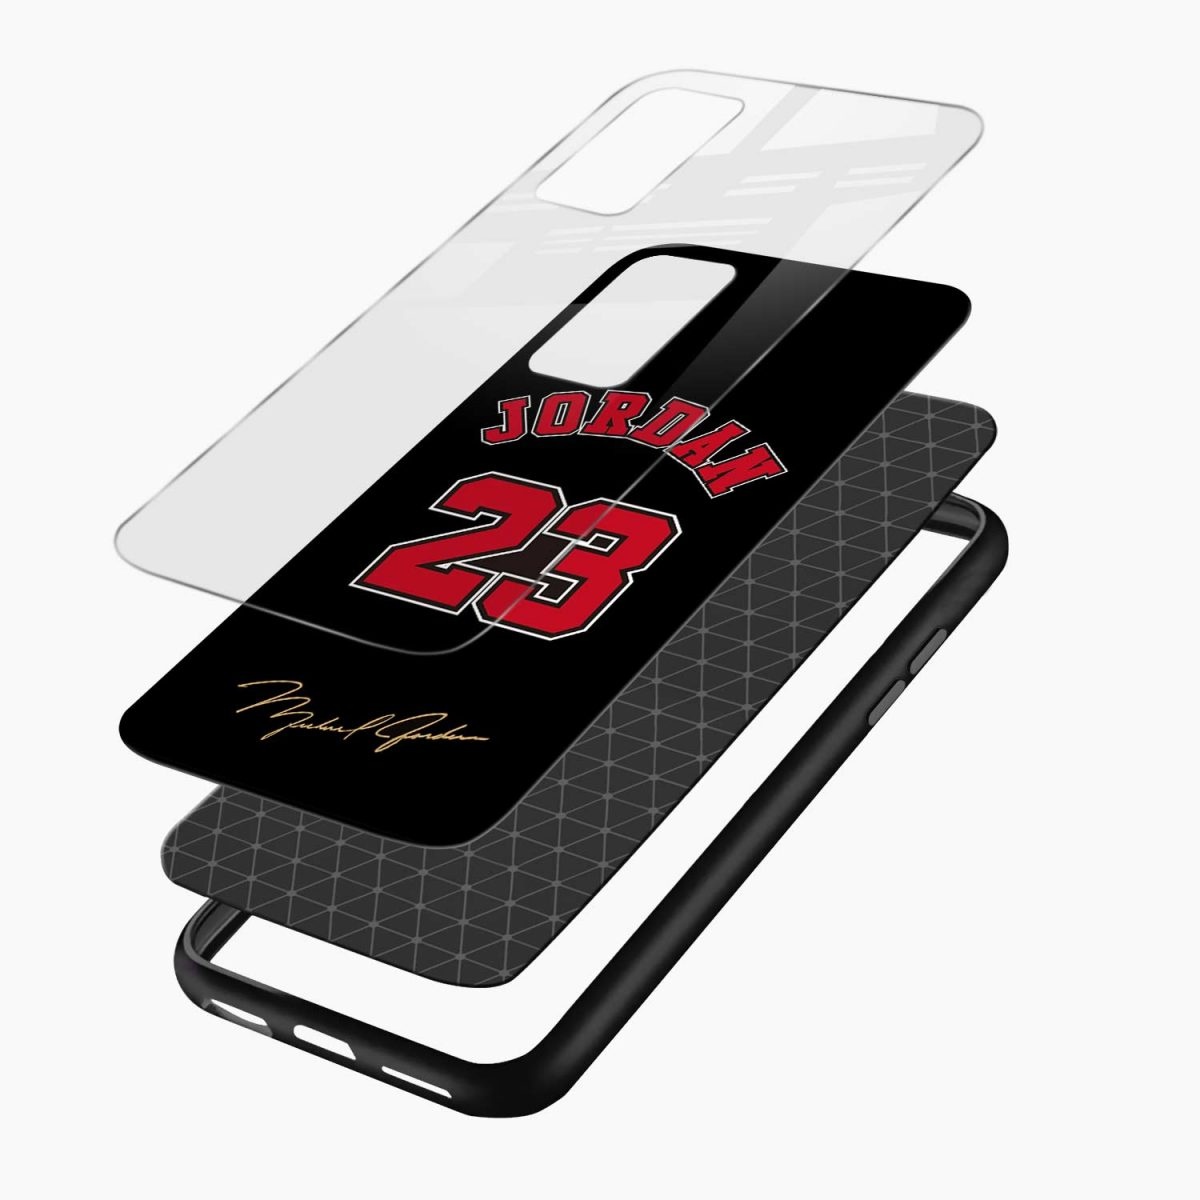 jordan layers view samsung galaxy note20 ultra back cover